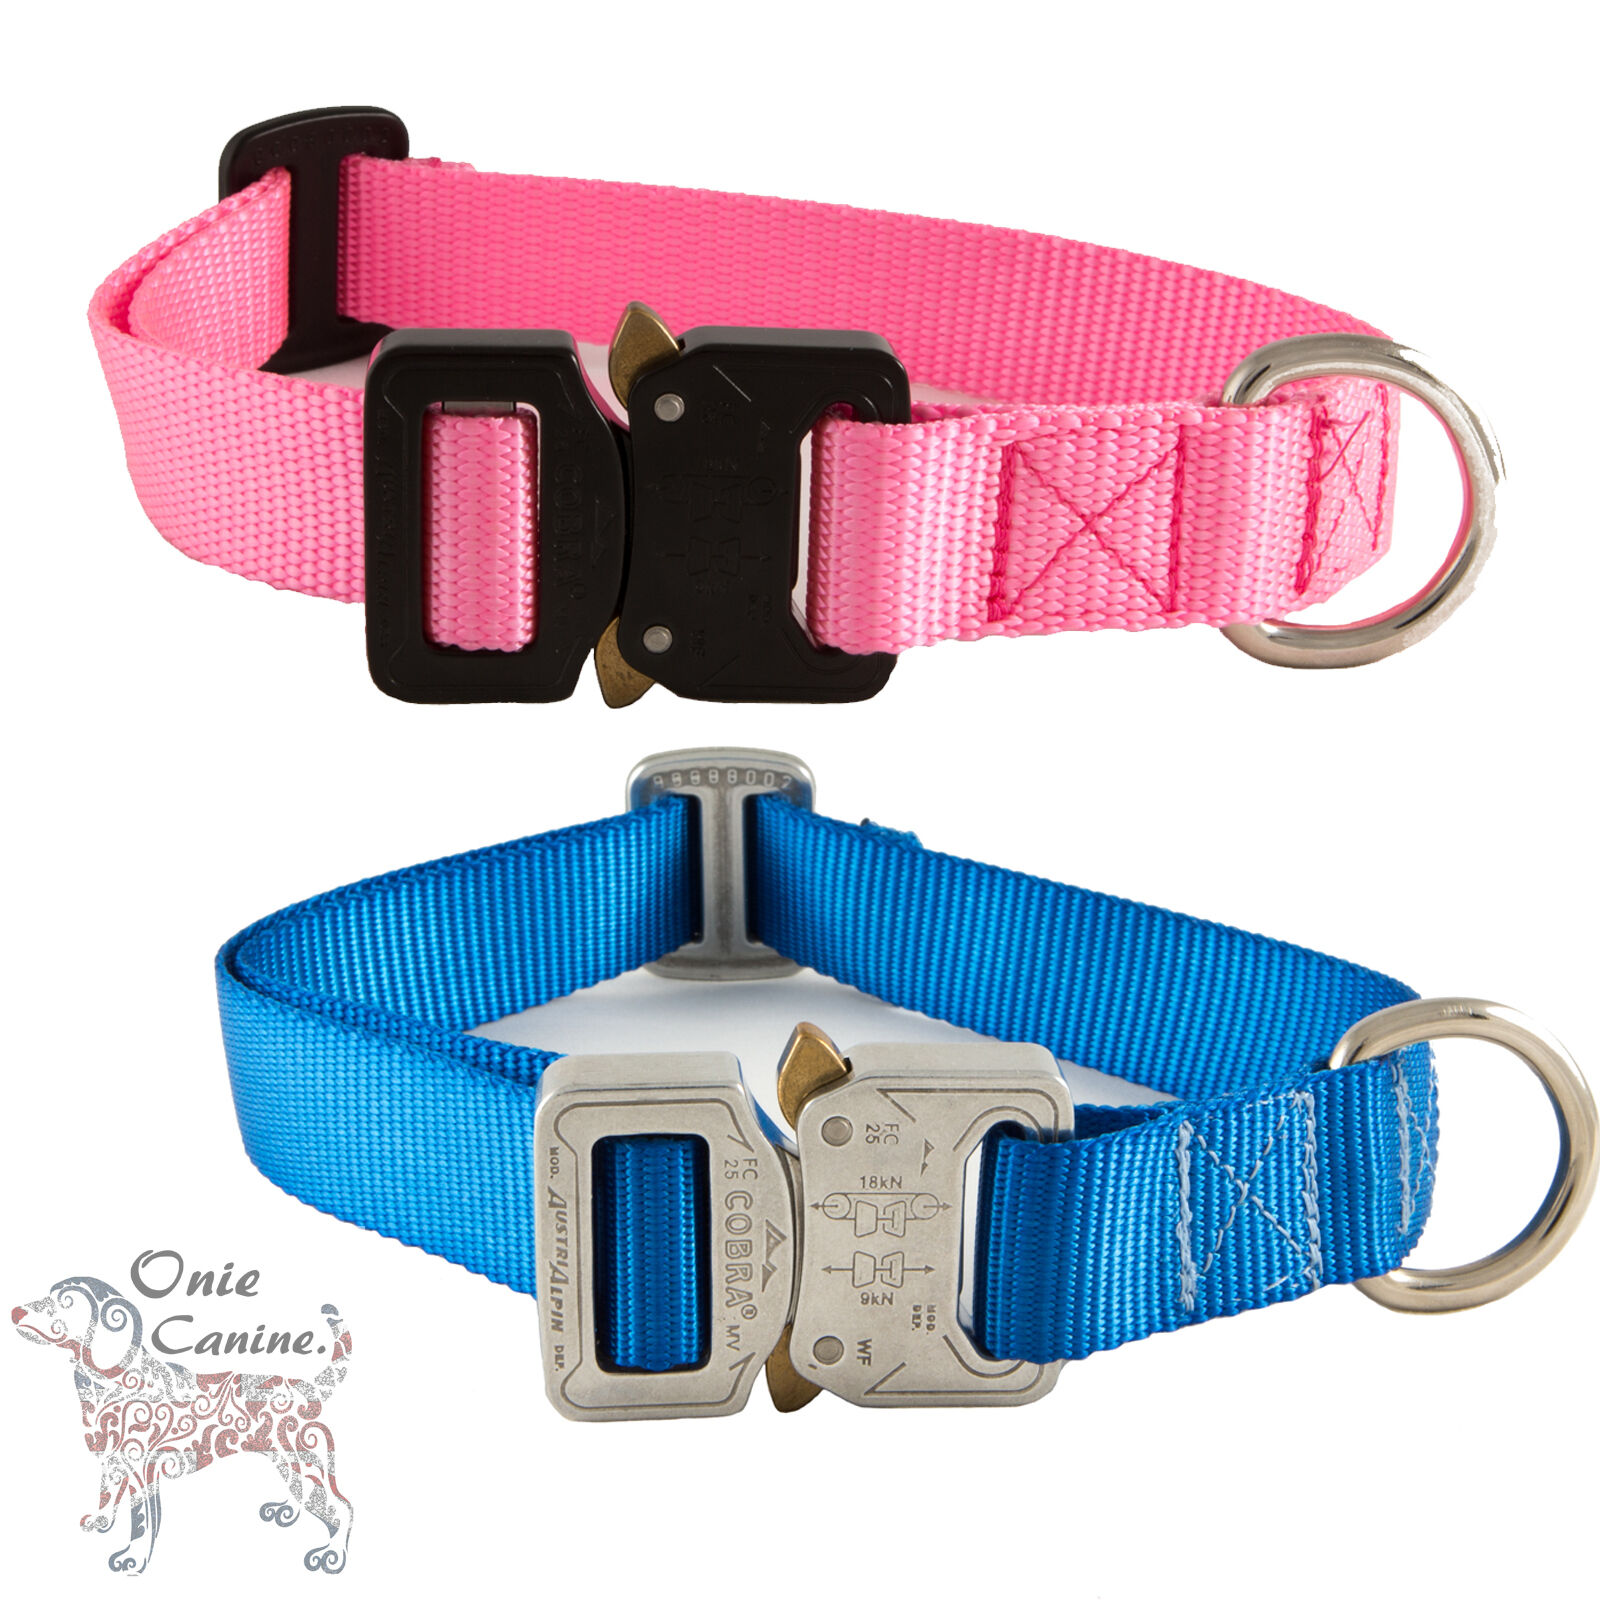 Onie Canine - Onie Dog Collar - His and Hers - Made in The Austrialpin